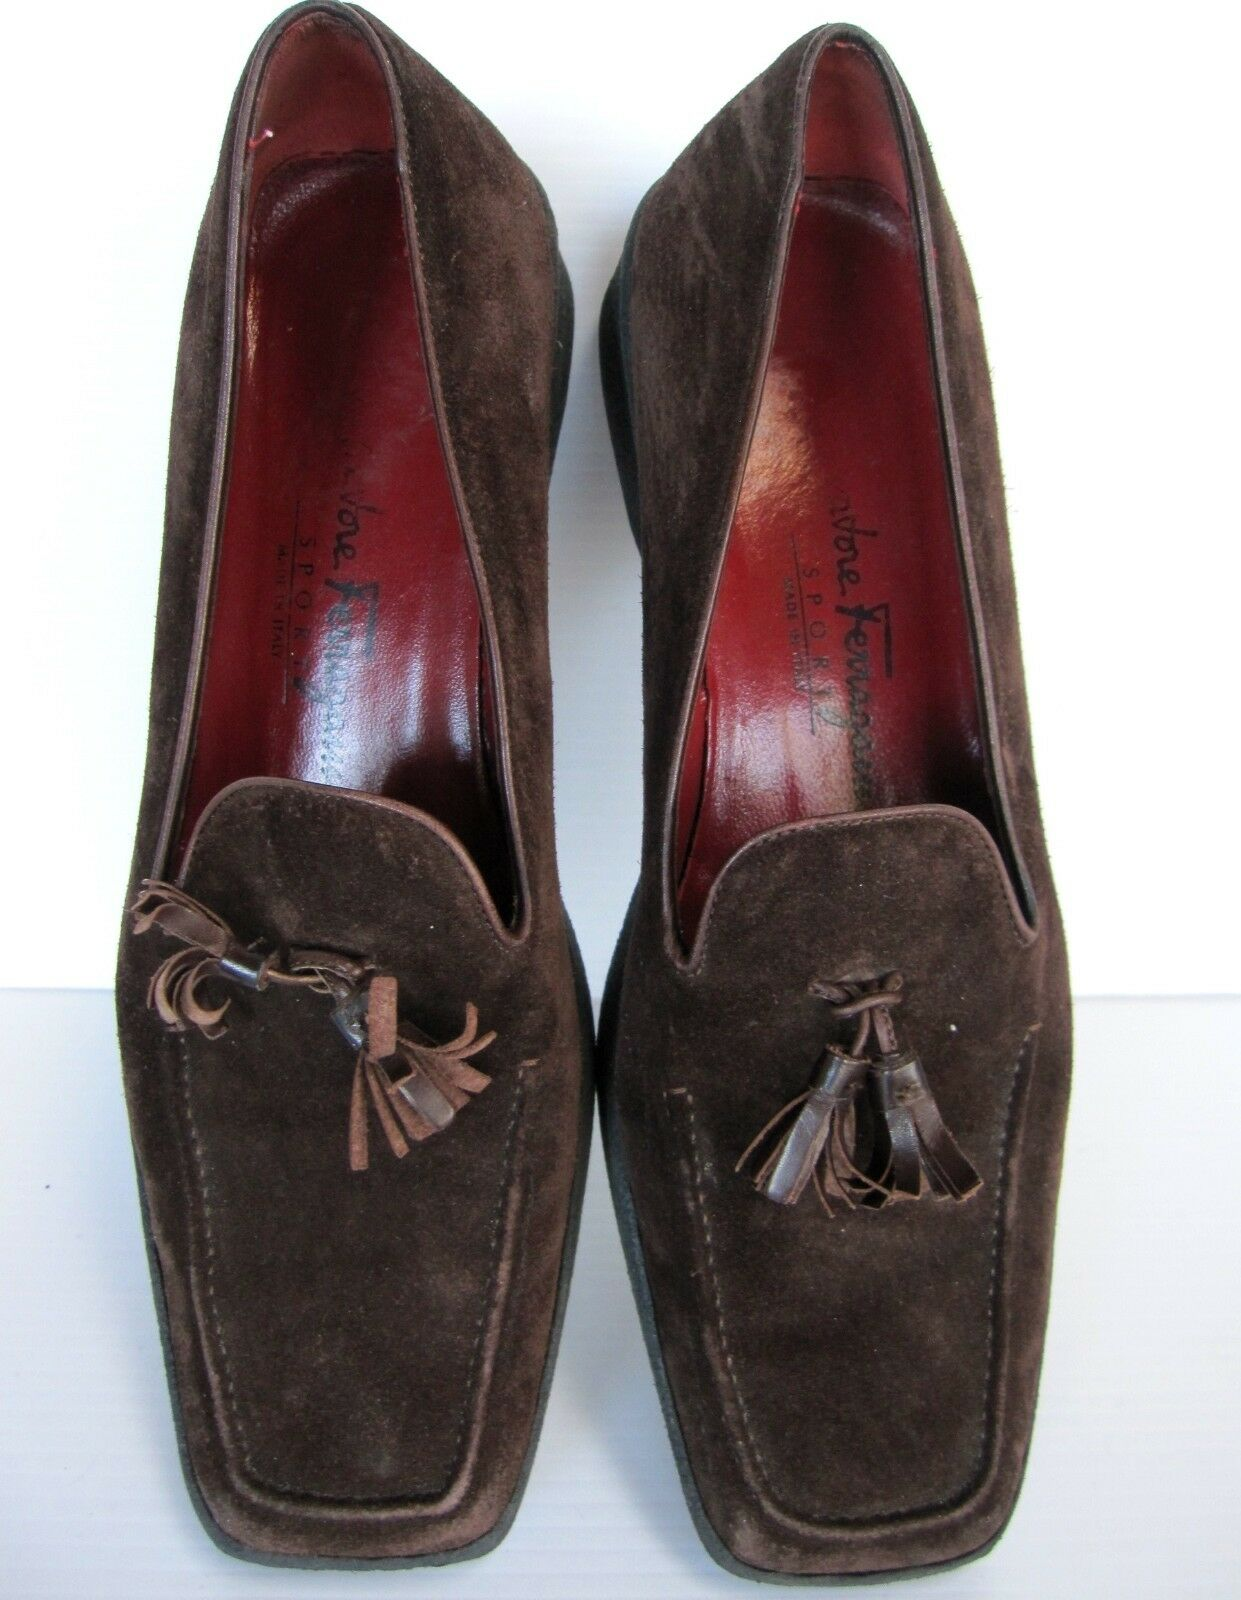 SALVATORE ITALY FERRAGAMO SPORT MADE IN ITALY SALVATORE SUEDE SLIP ON Schuhe SIZE 8 1/2 B BROWN d00481